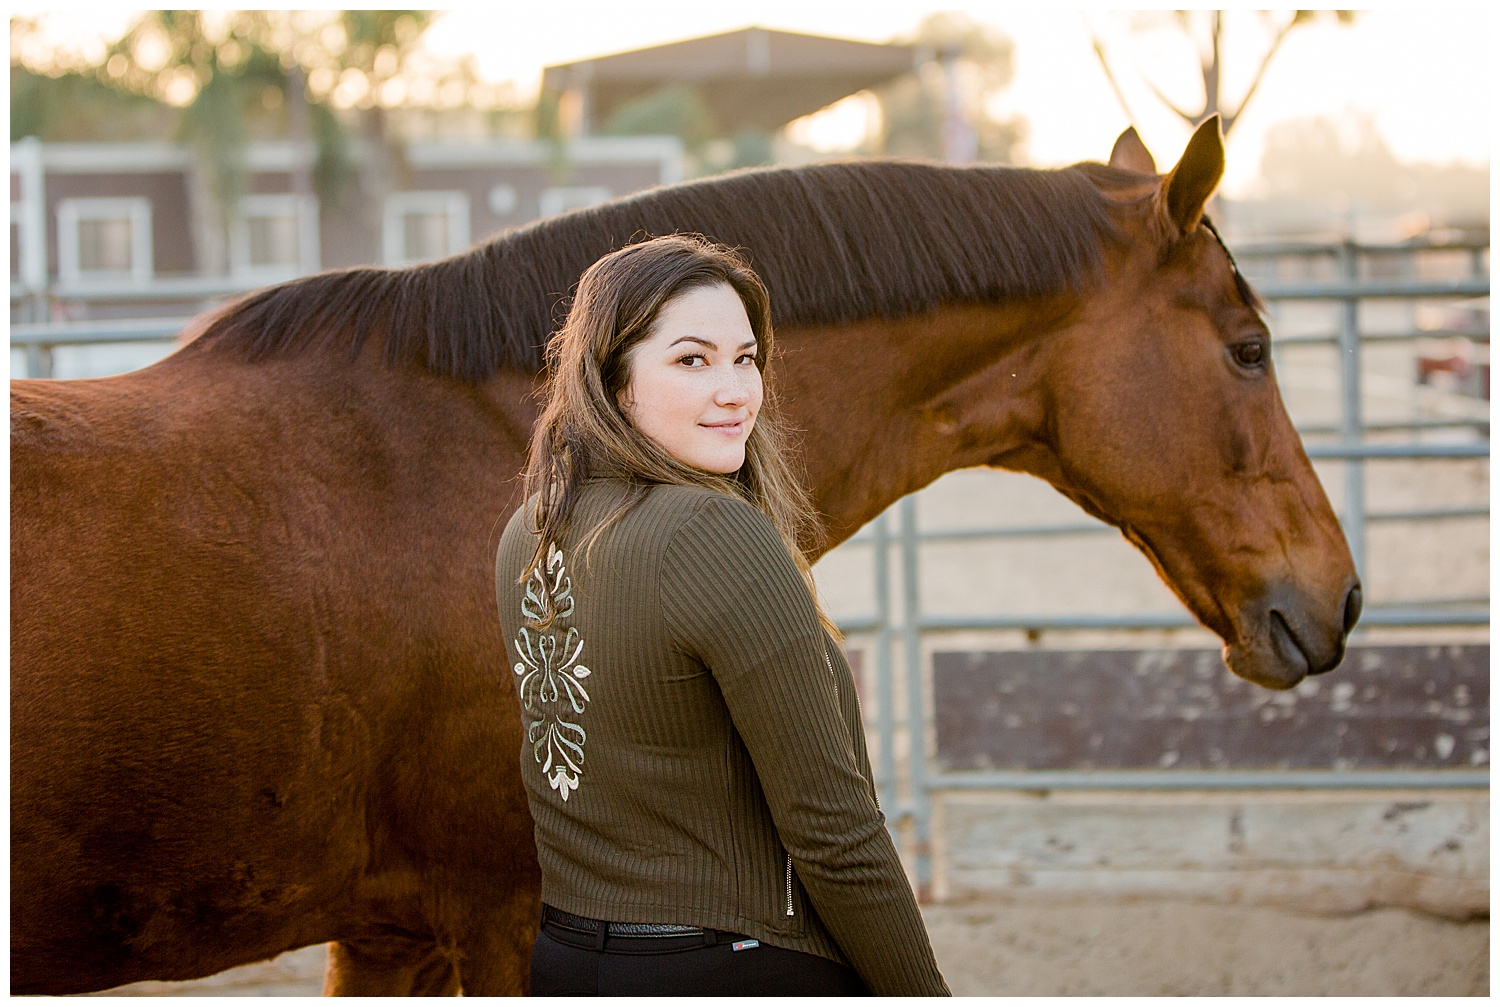 Black Background Horse Rider Equine Photographer Southern California Sara Shier Photography SoCal Equestrian Cowgirl_0320.jpg